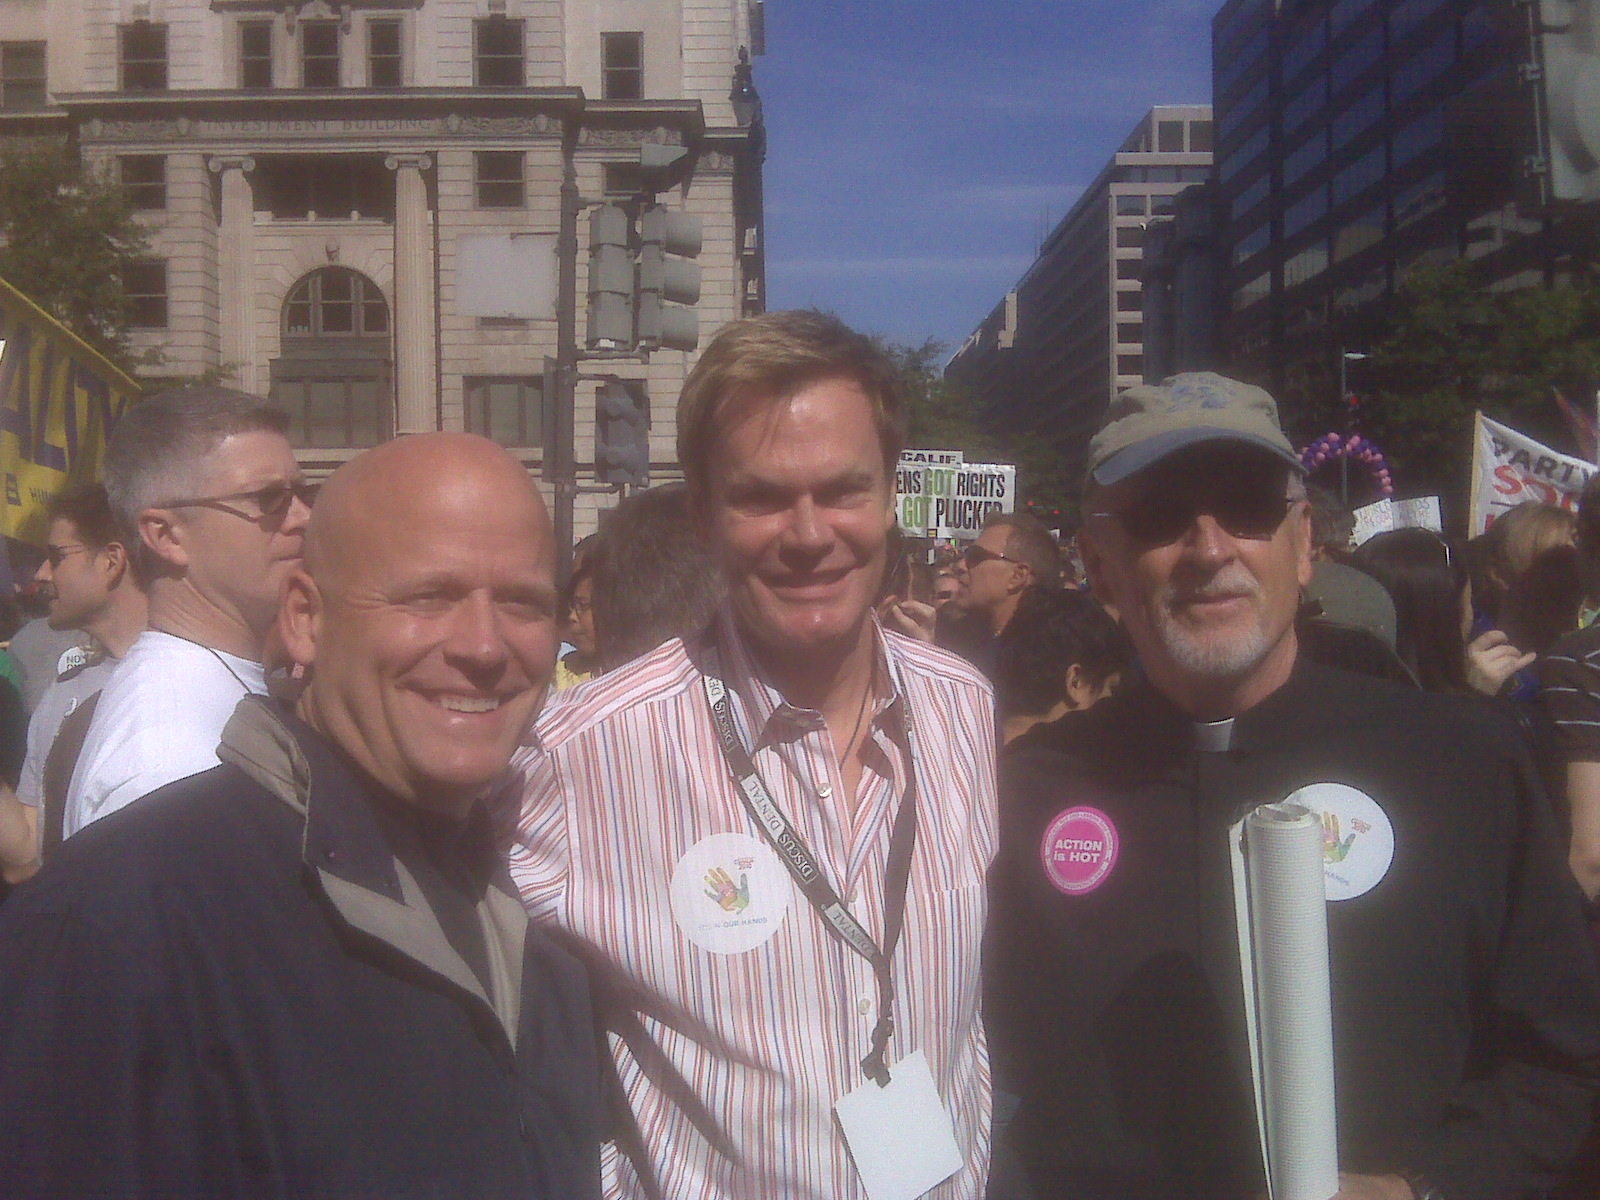 Jeff Lutes, Bruce Bastian, and Rev. Dr. Mel White at the National Equality March